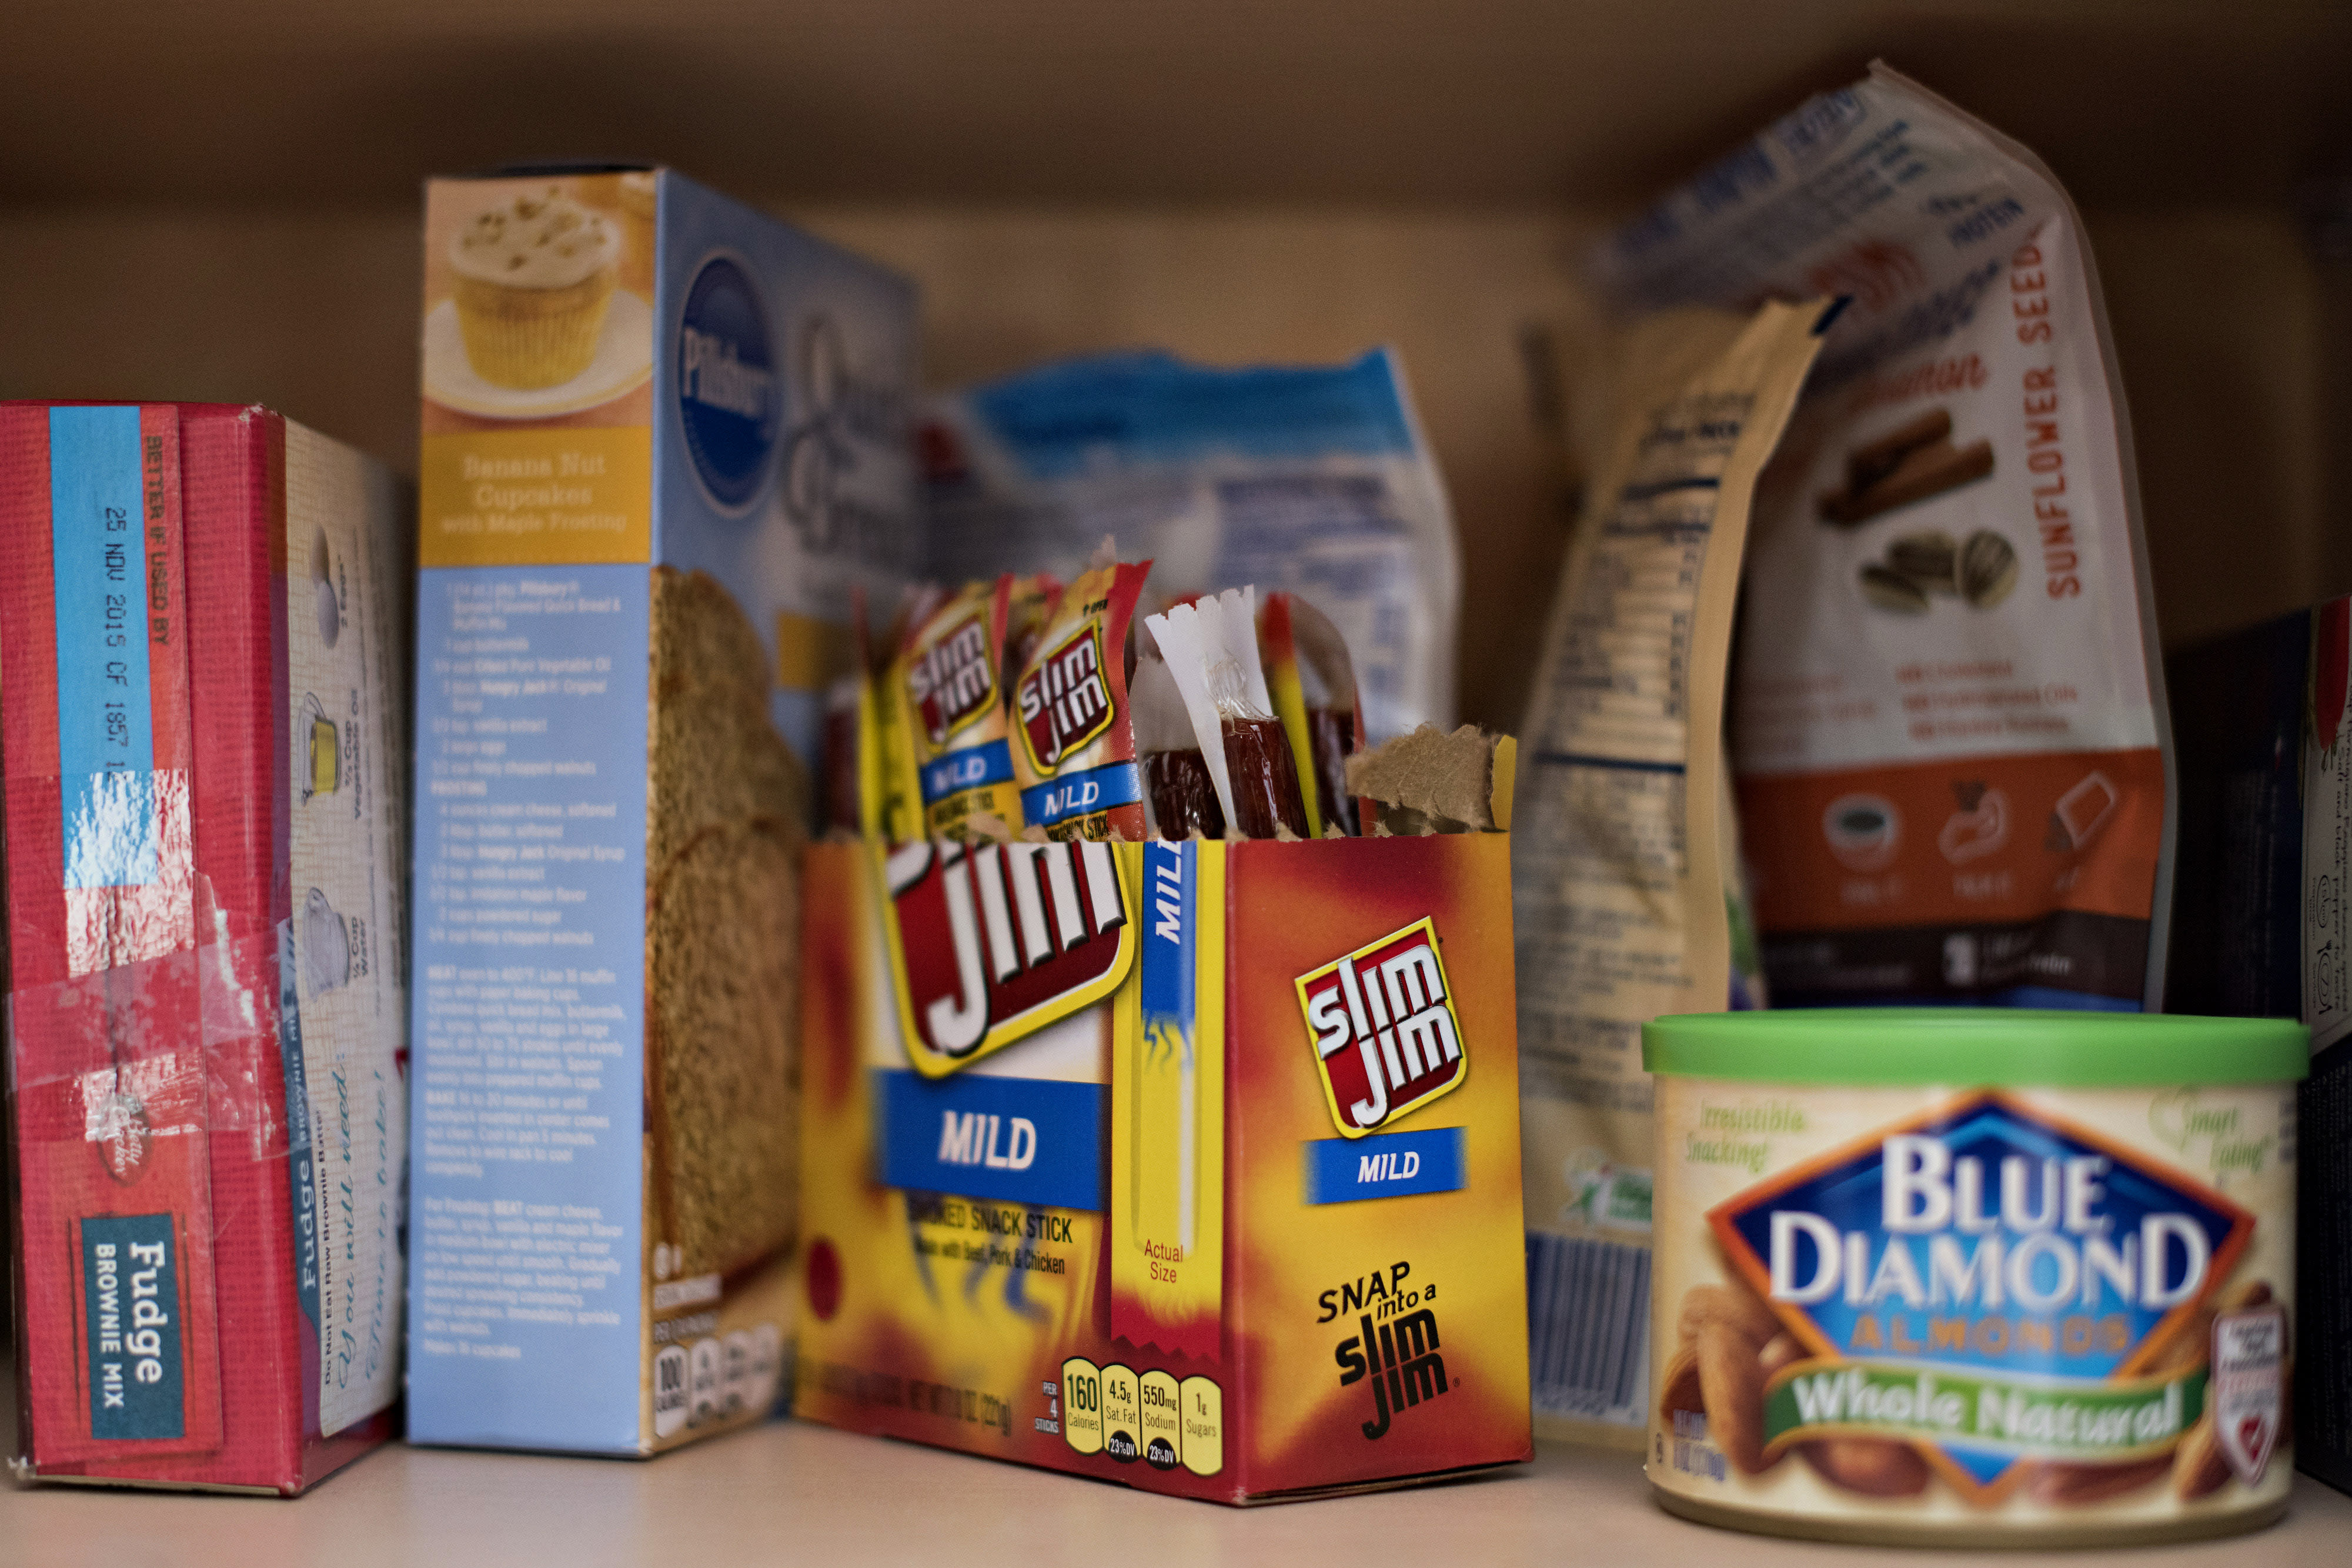 Conagra updates Slim Jim, hoping to appeal to young consumers